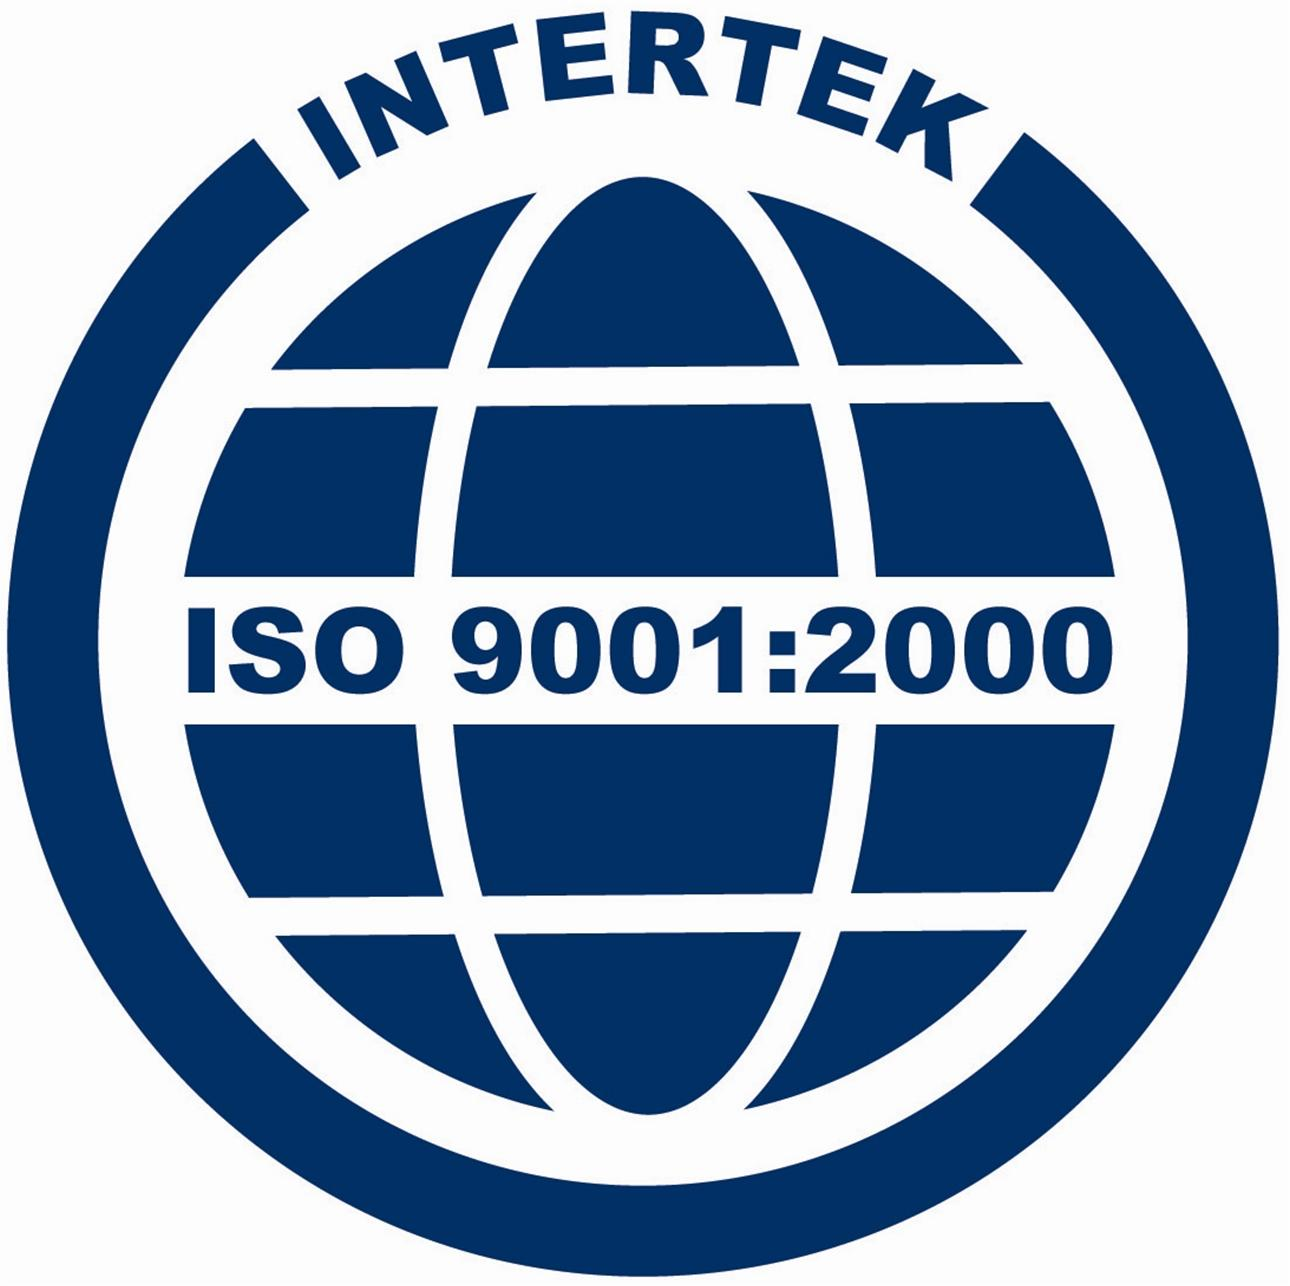 iso 9000 version 2000 pdf